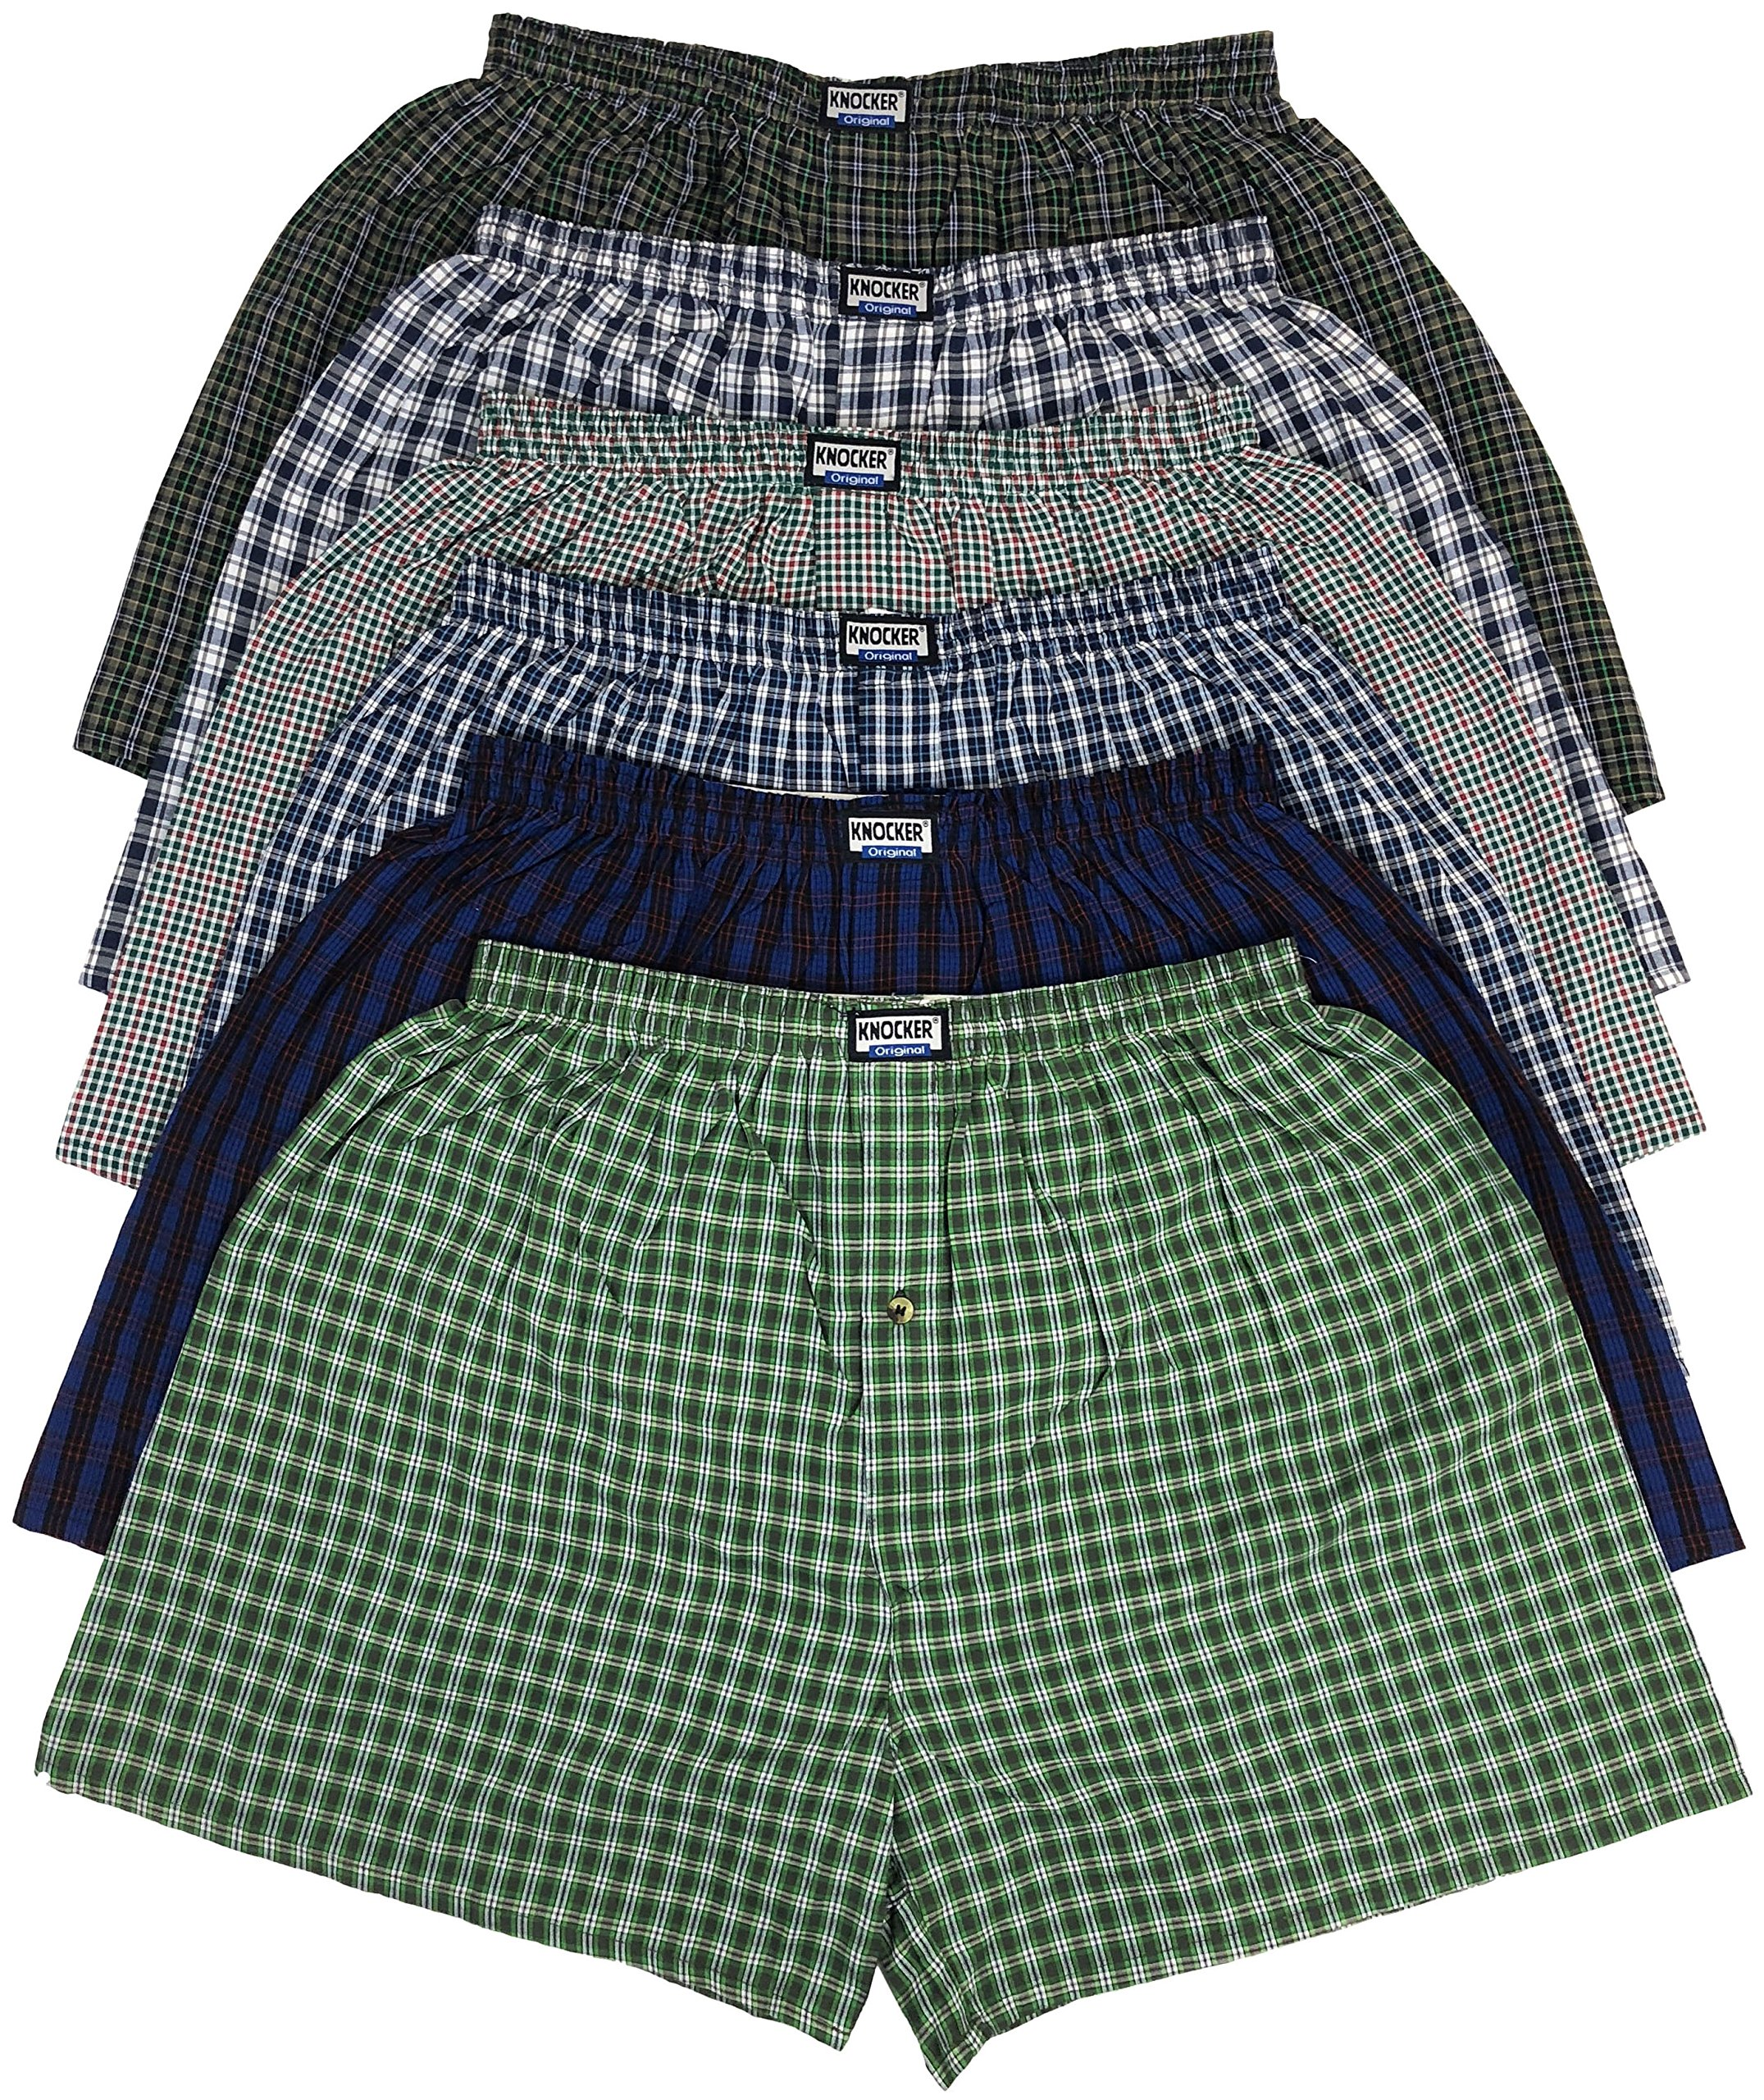 ToBeInStyle Men's Pack of 6 Classic Fit Tartan Plaid Boxers - Assorted - Large